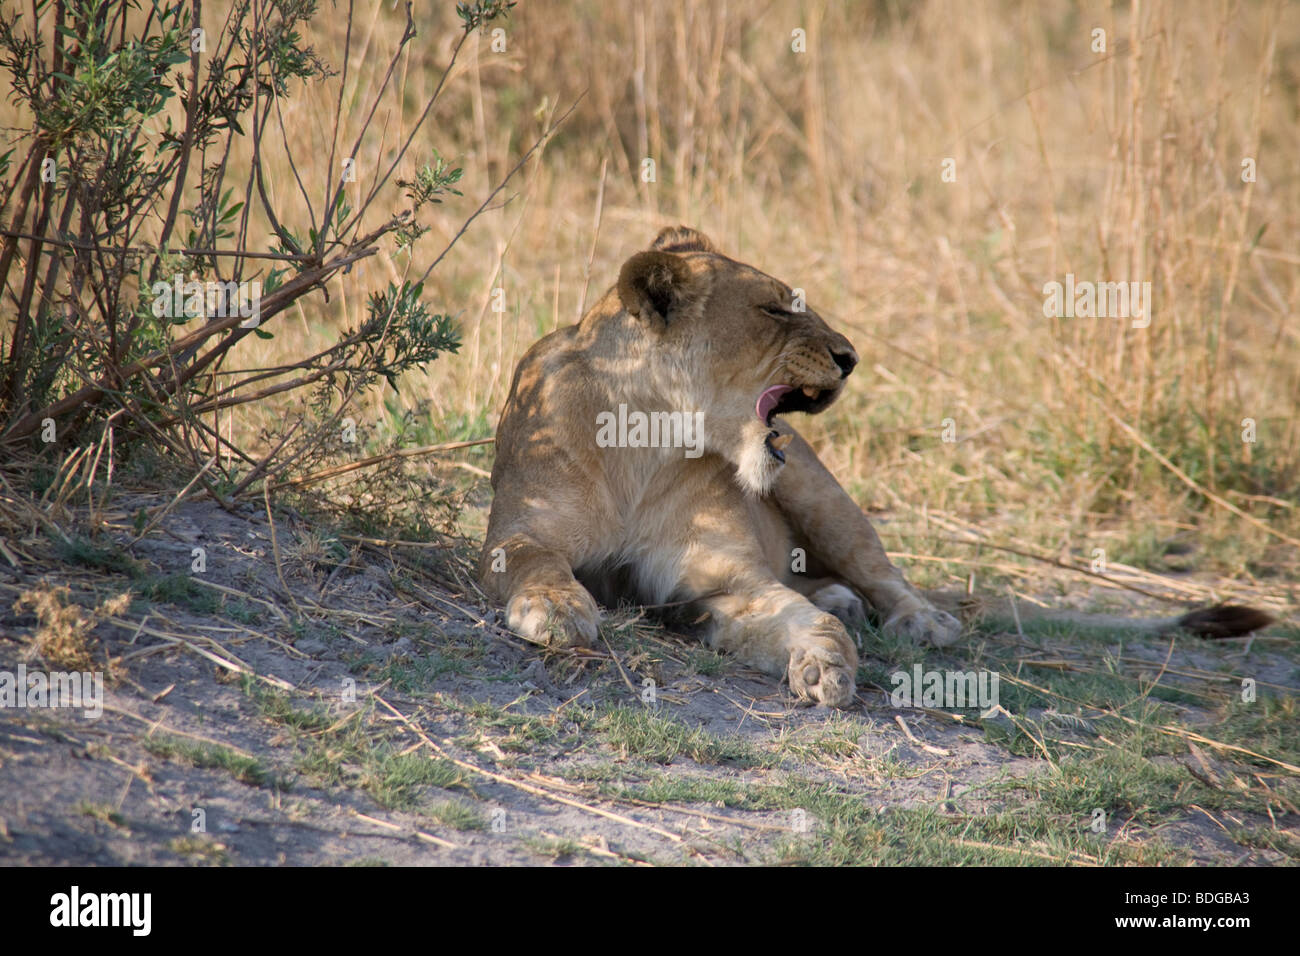 Lioness yawning, lying in the shade of grass in the Botswana Okavango Delta, - Stock Image